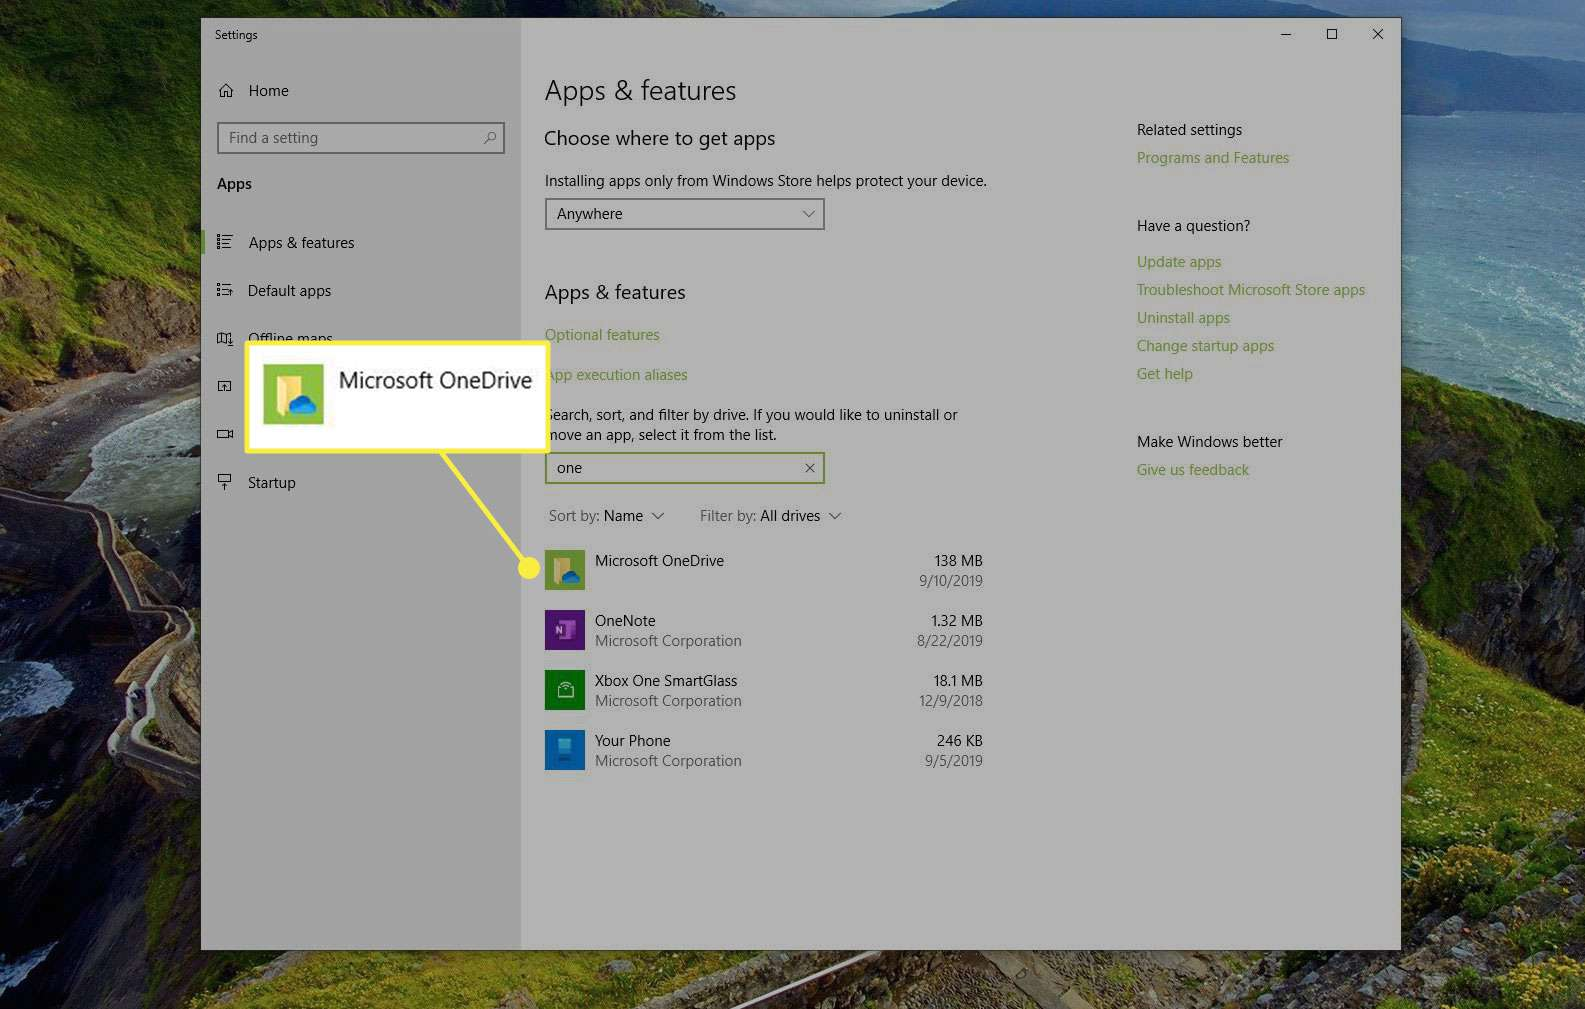 Microsoft OneDrive in Apps & Features